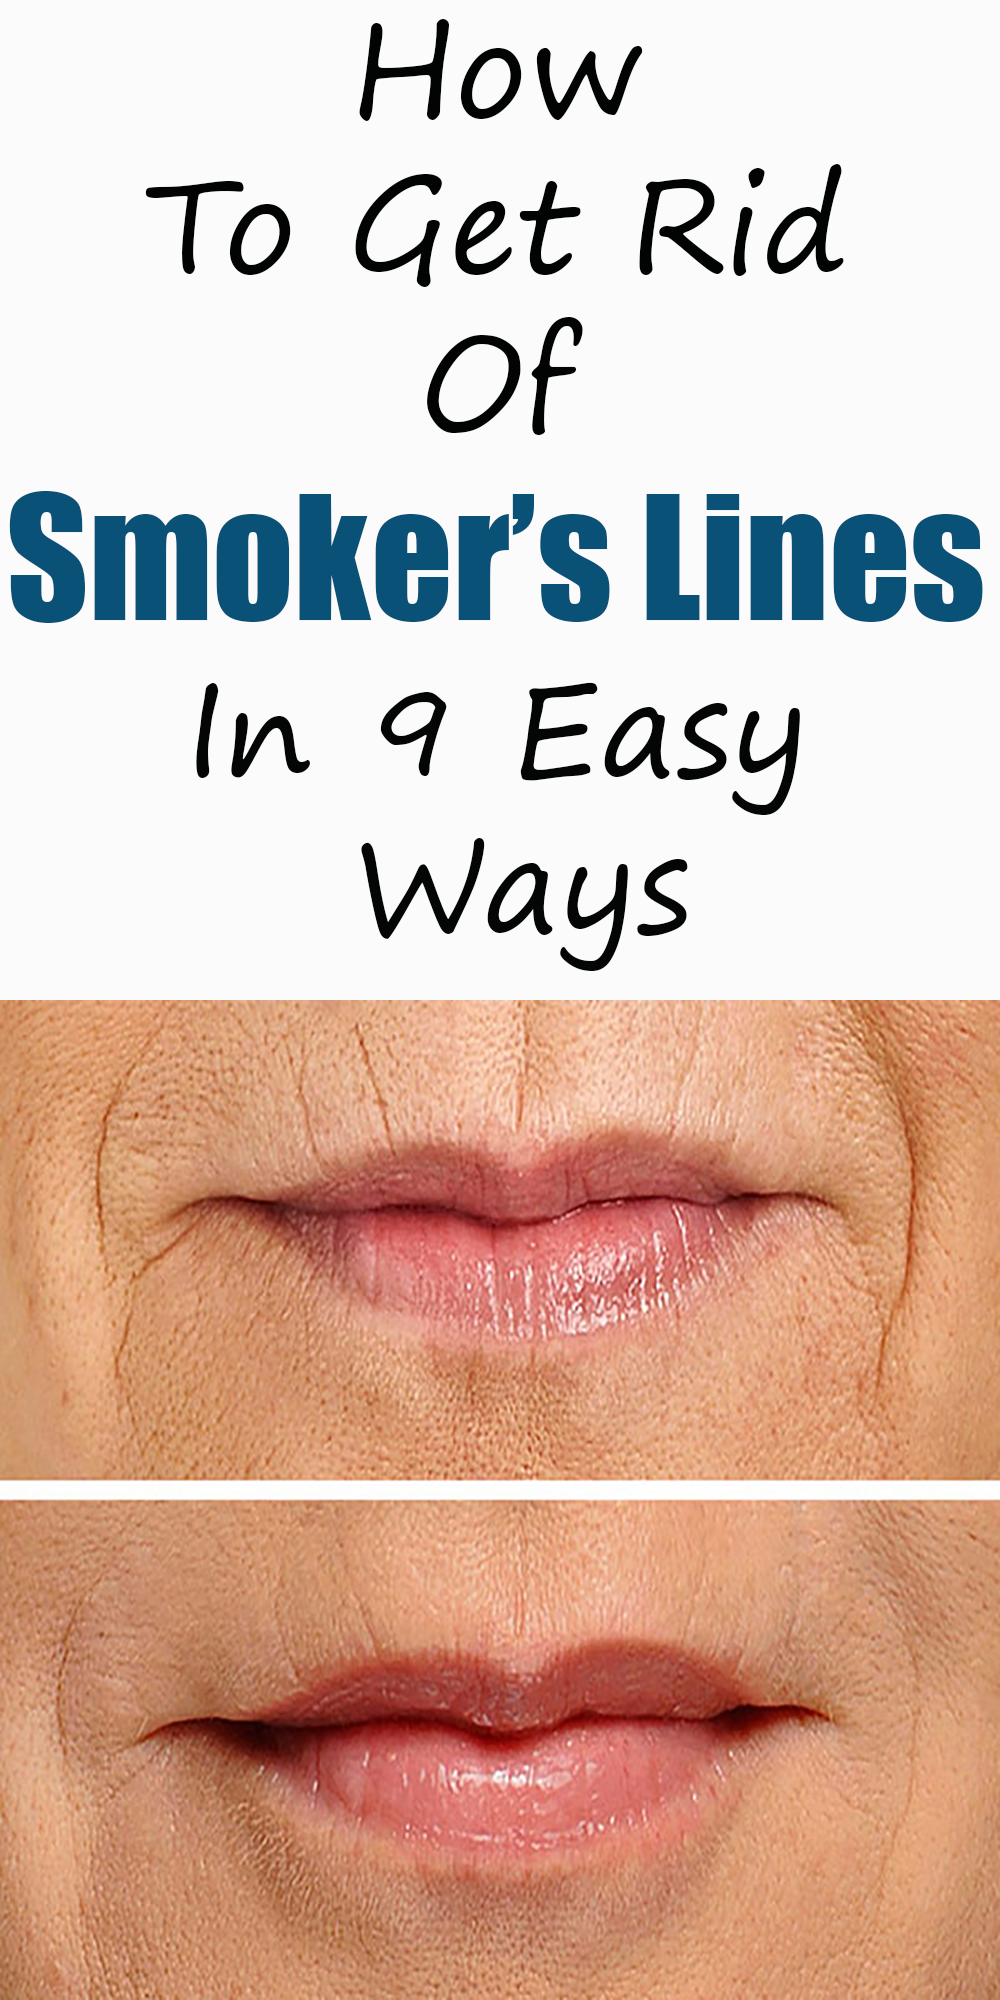 dde3d7ab0a0b8635d2662ebc9e5e80a9 - How To Get Rid Of Lines On The Lips